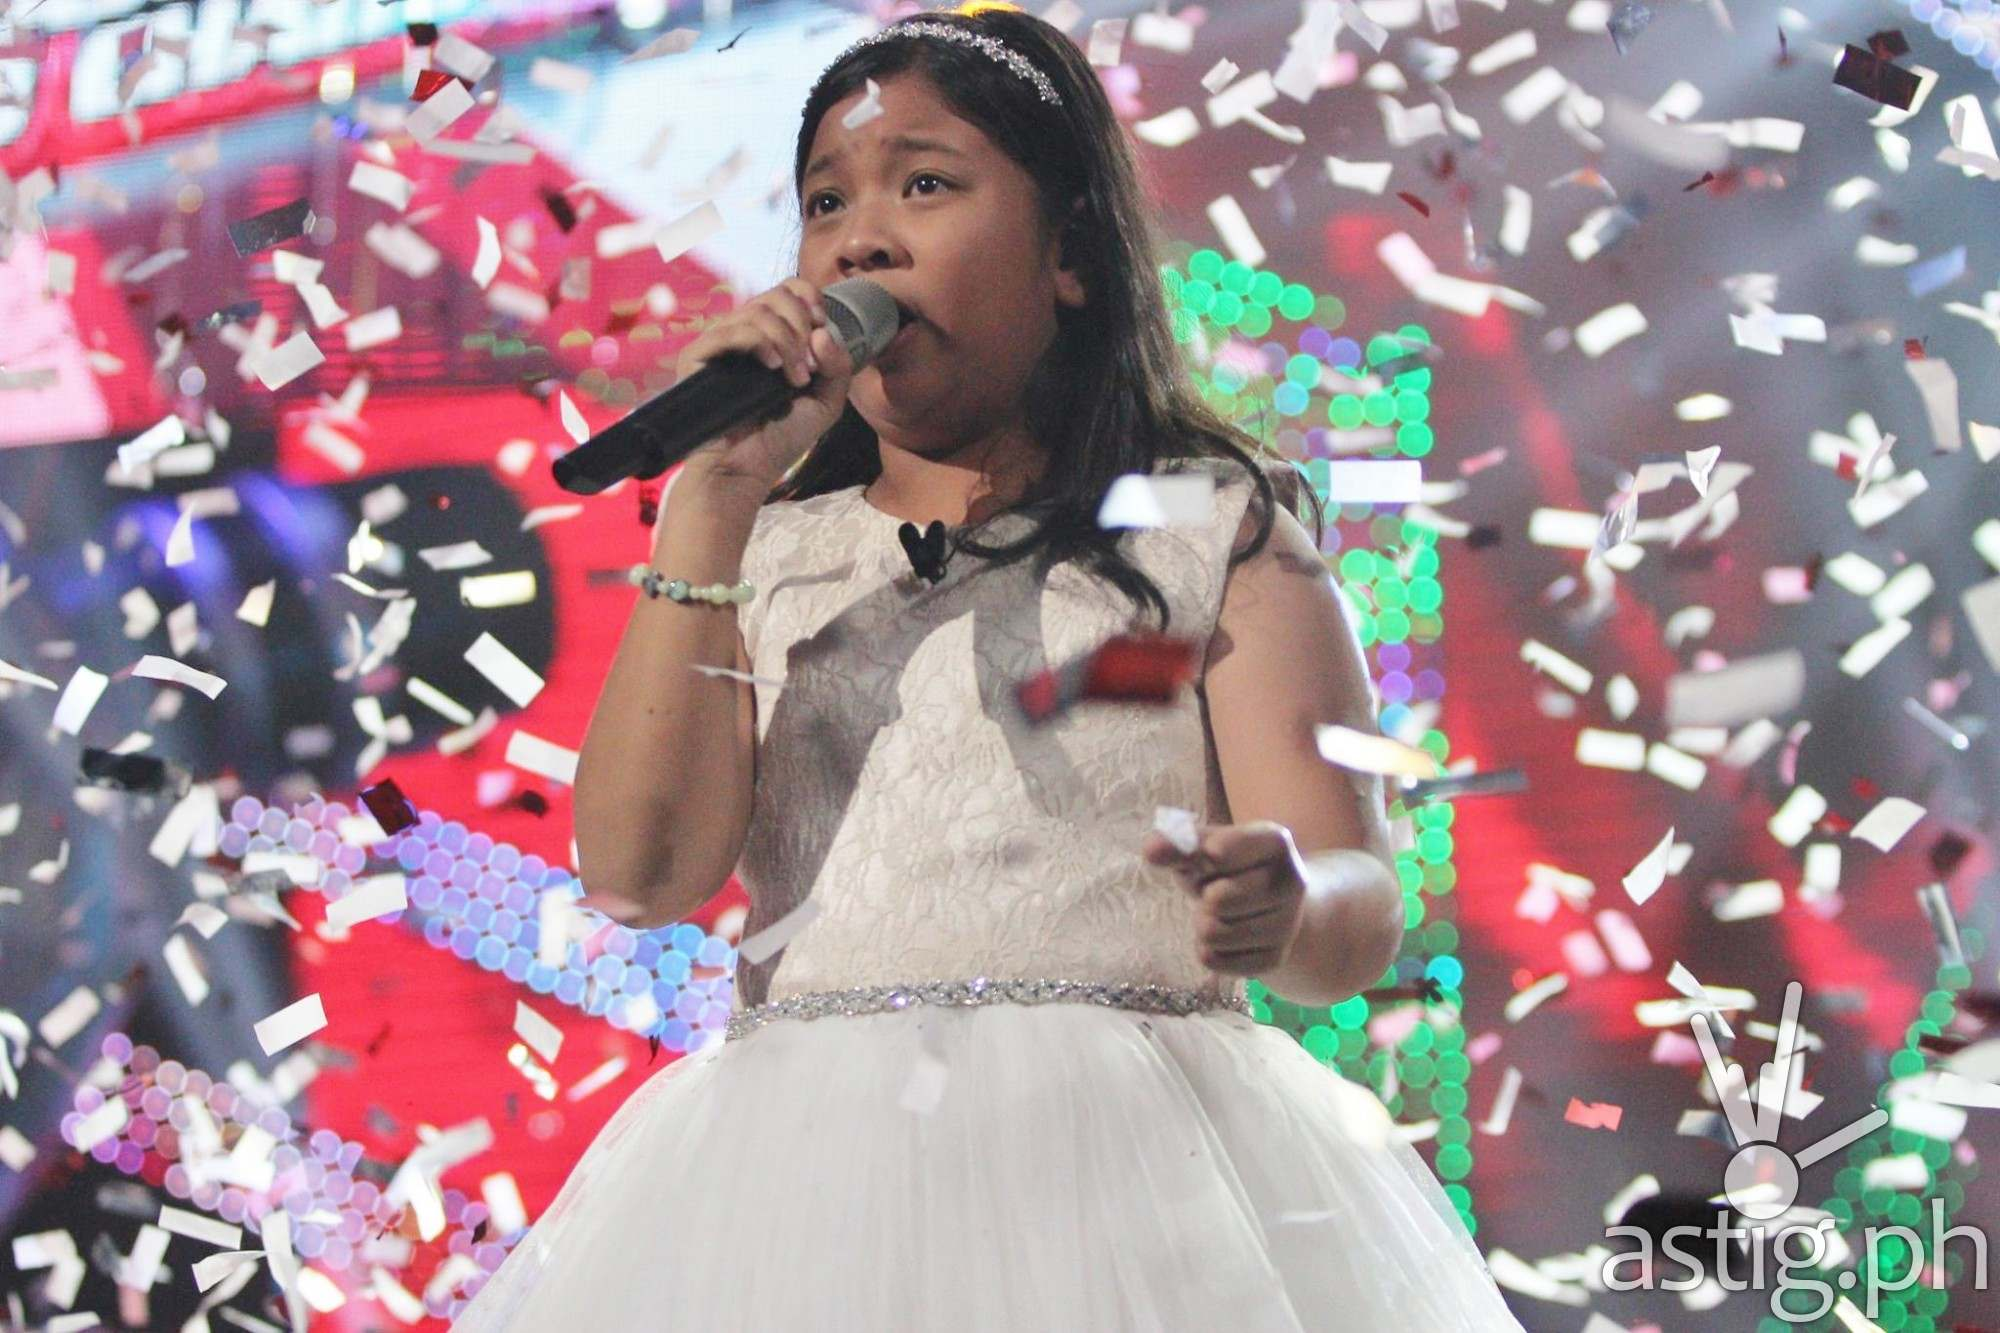 The Voice Kids Season 2 grand champion Elha Nympha performs her winning piece Ikaw Ang Lahat Sa Akin